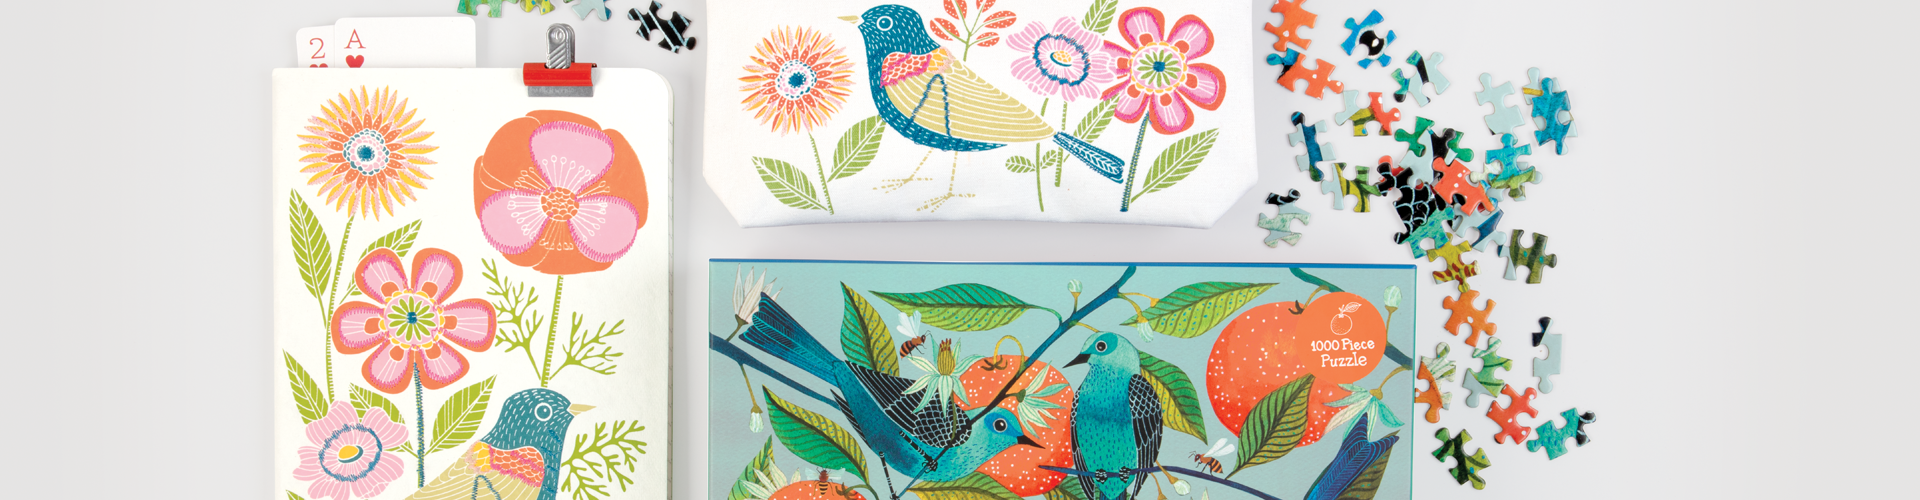 The Avian Friends collection from Galison